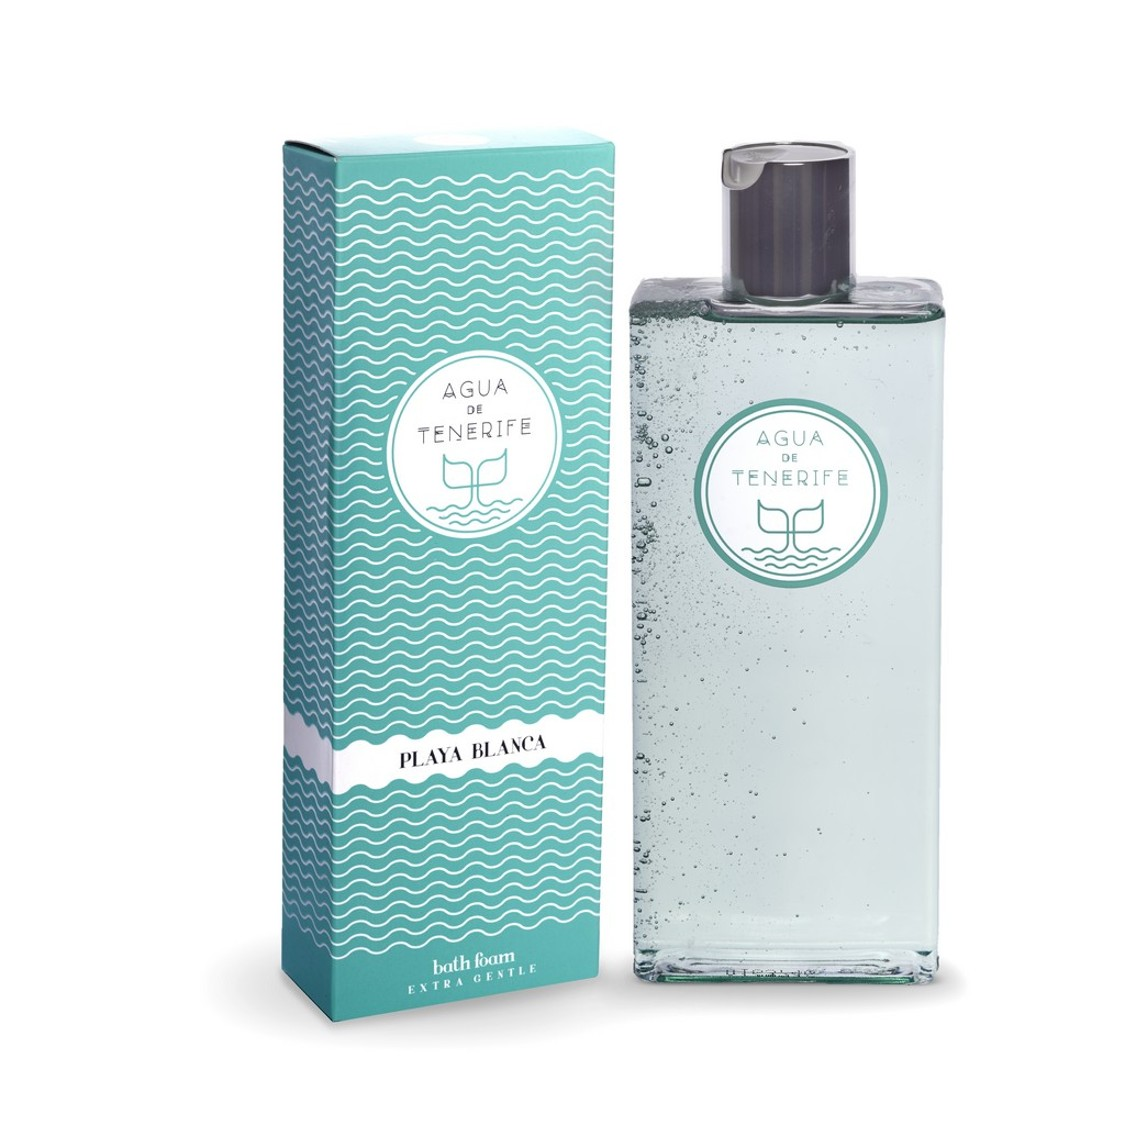 shop Agua de Tenerife  LAS FRAGANCIAS DE LA ISLA: Playa Blanca Bath Foam 250 ml. 